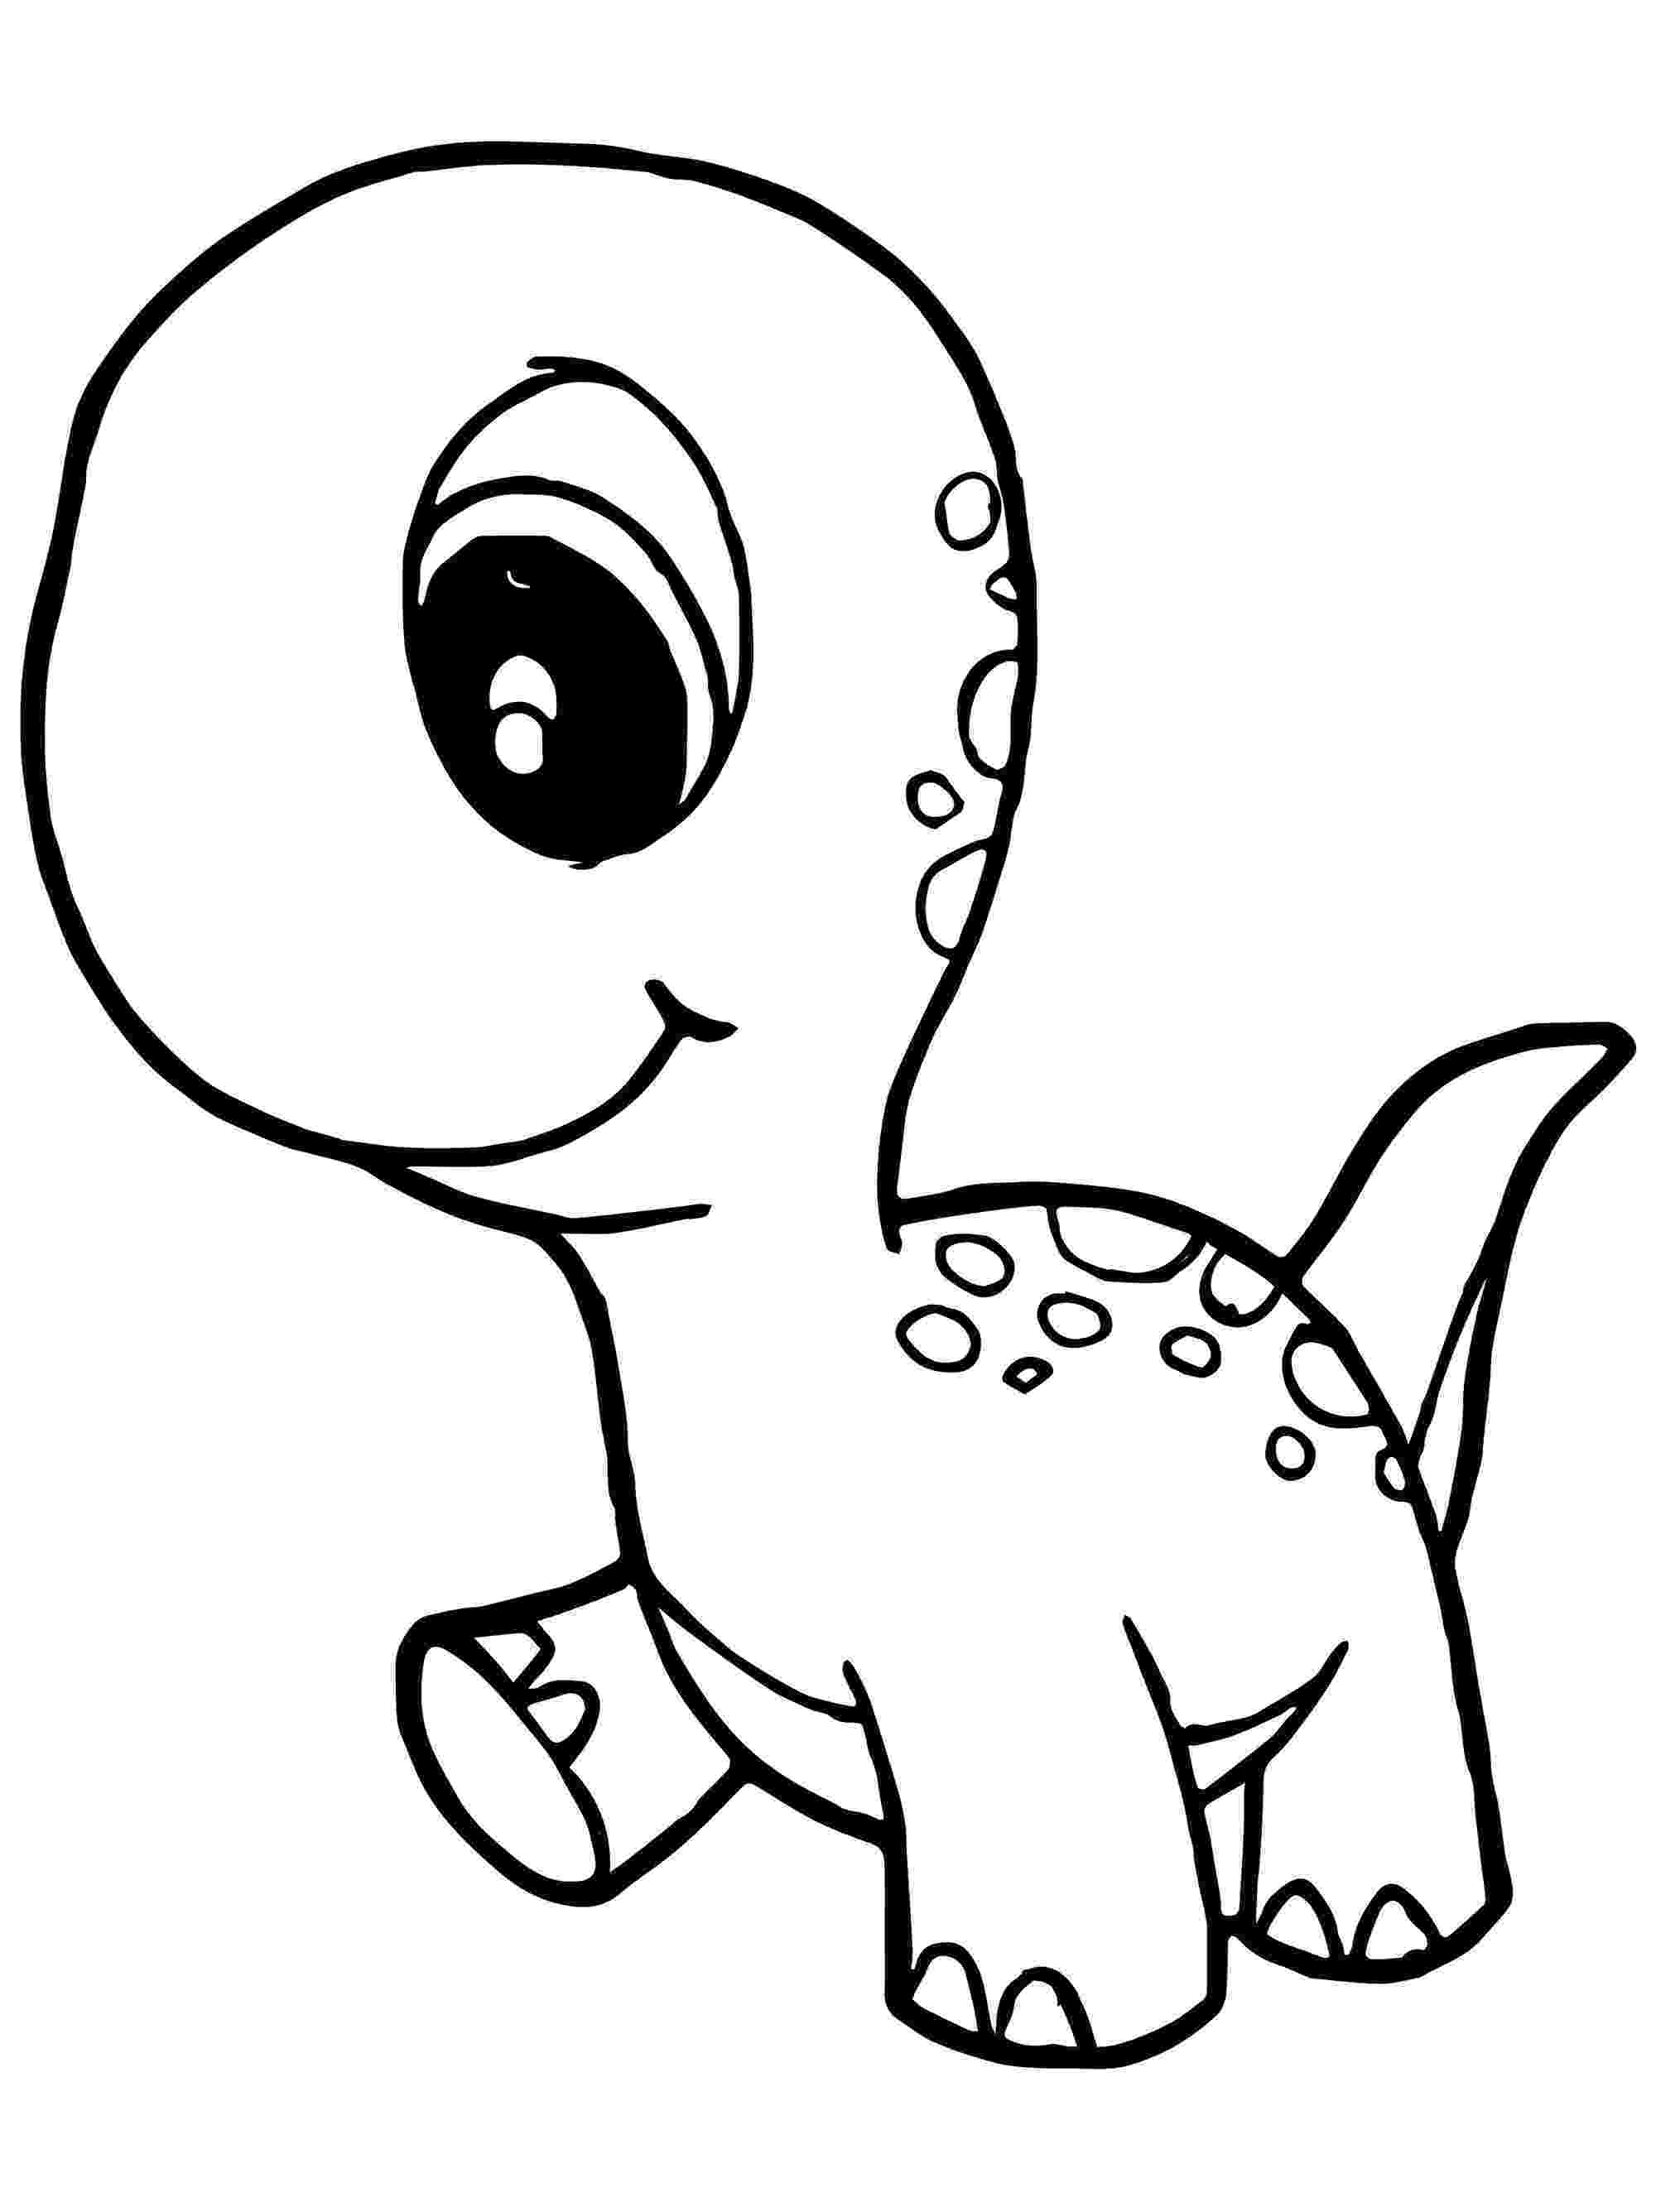 dinosaur color page coloring pages from the animated tv series dinosaur train dinosaur page color